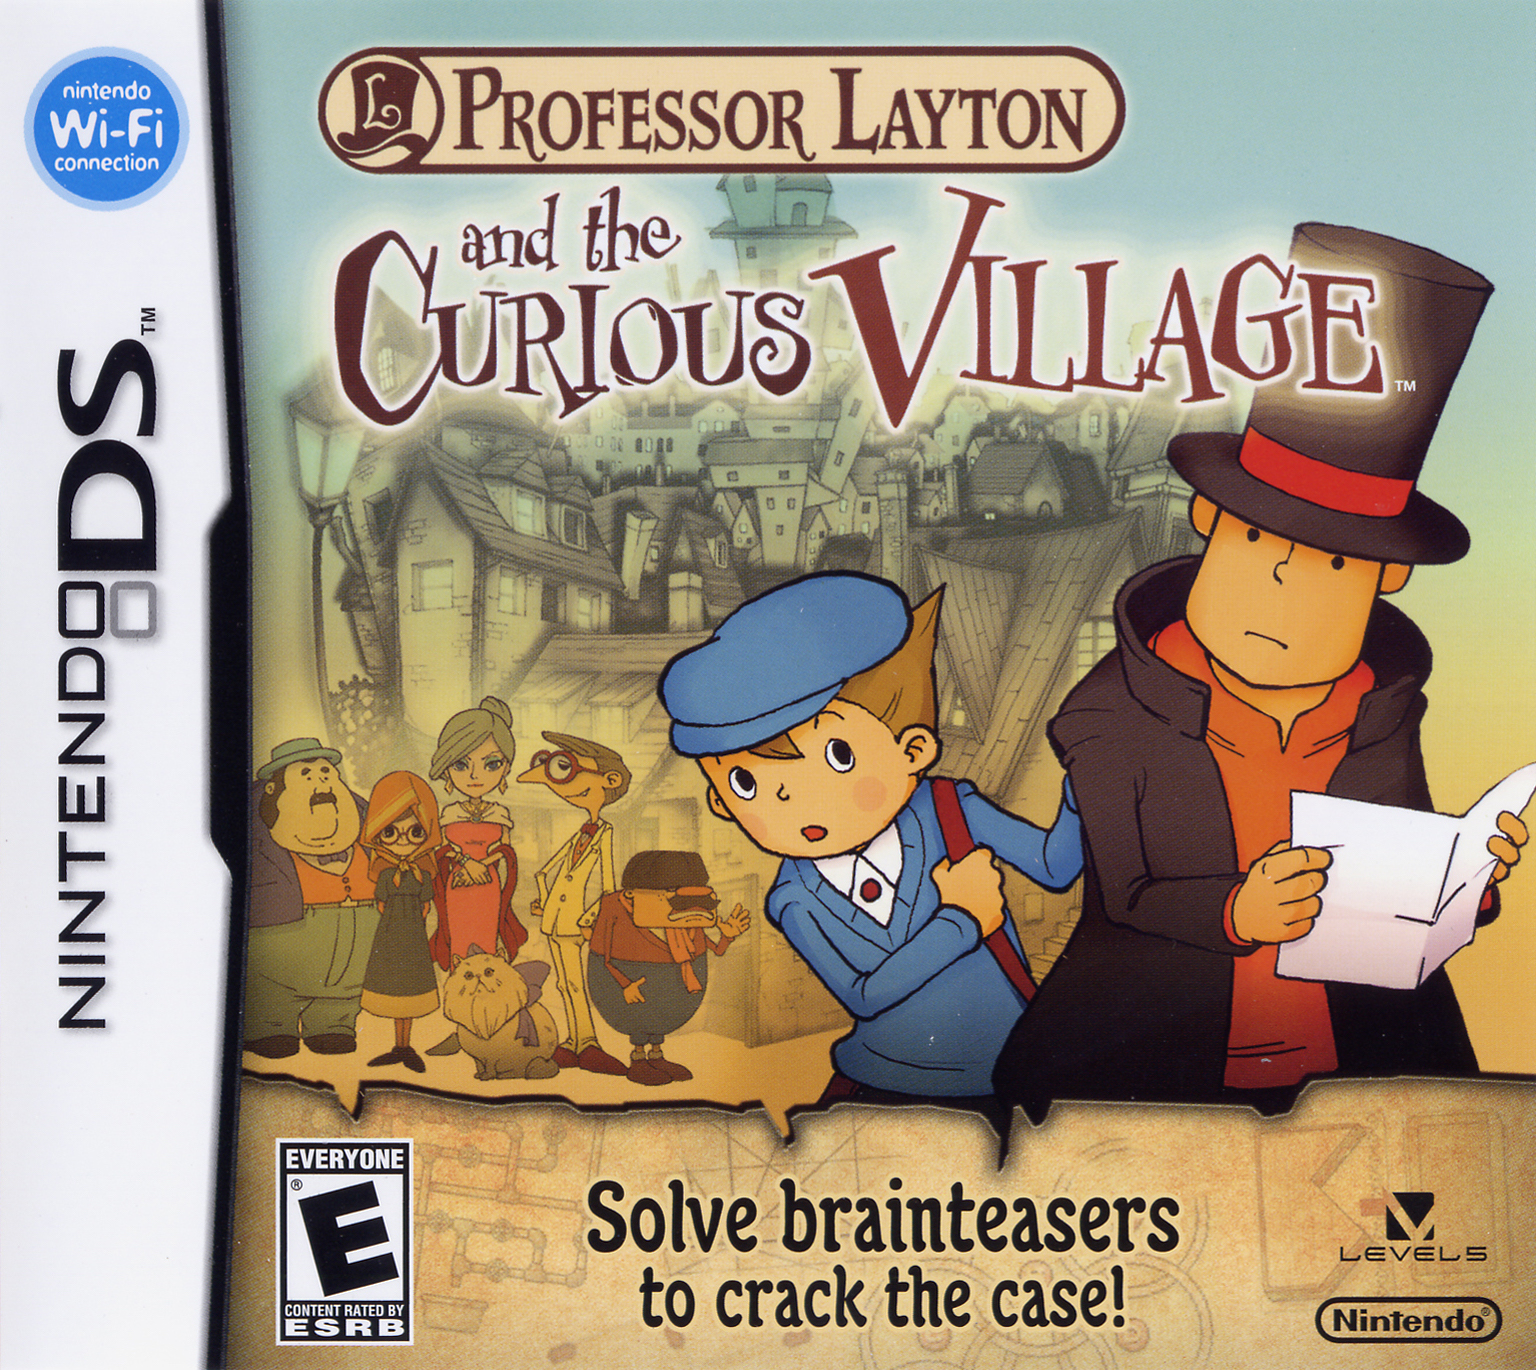 Box artwork for Professor Layton and the Curious Village.